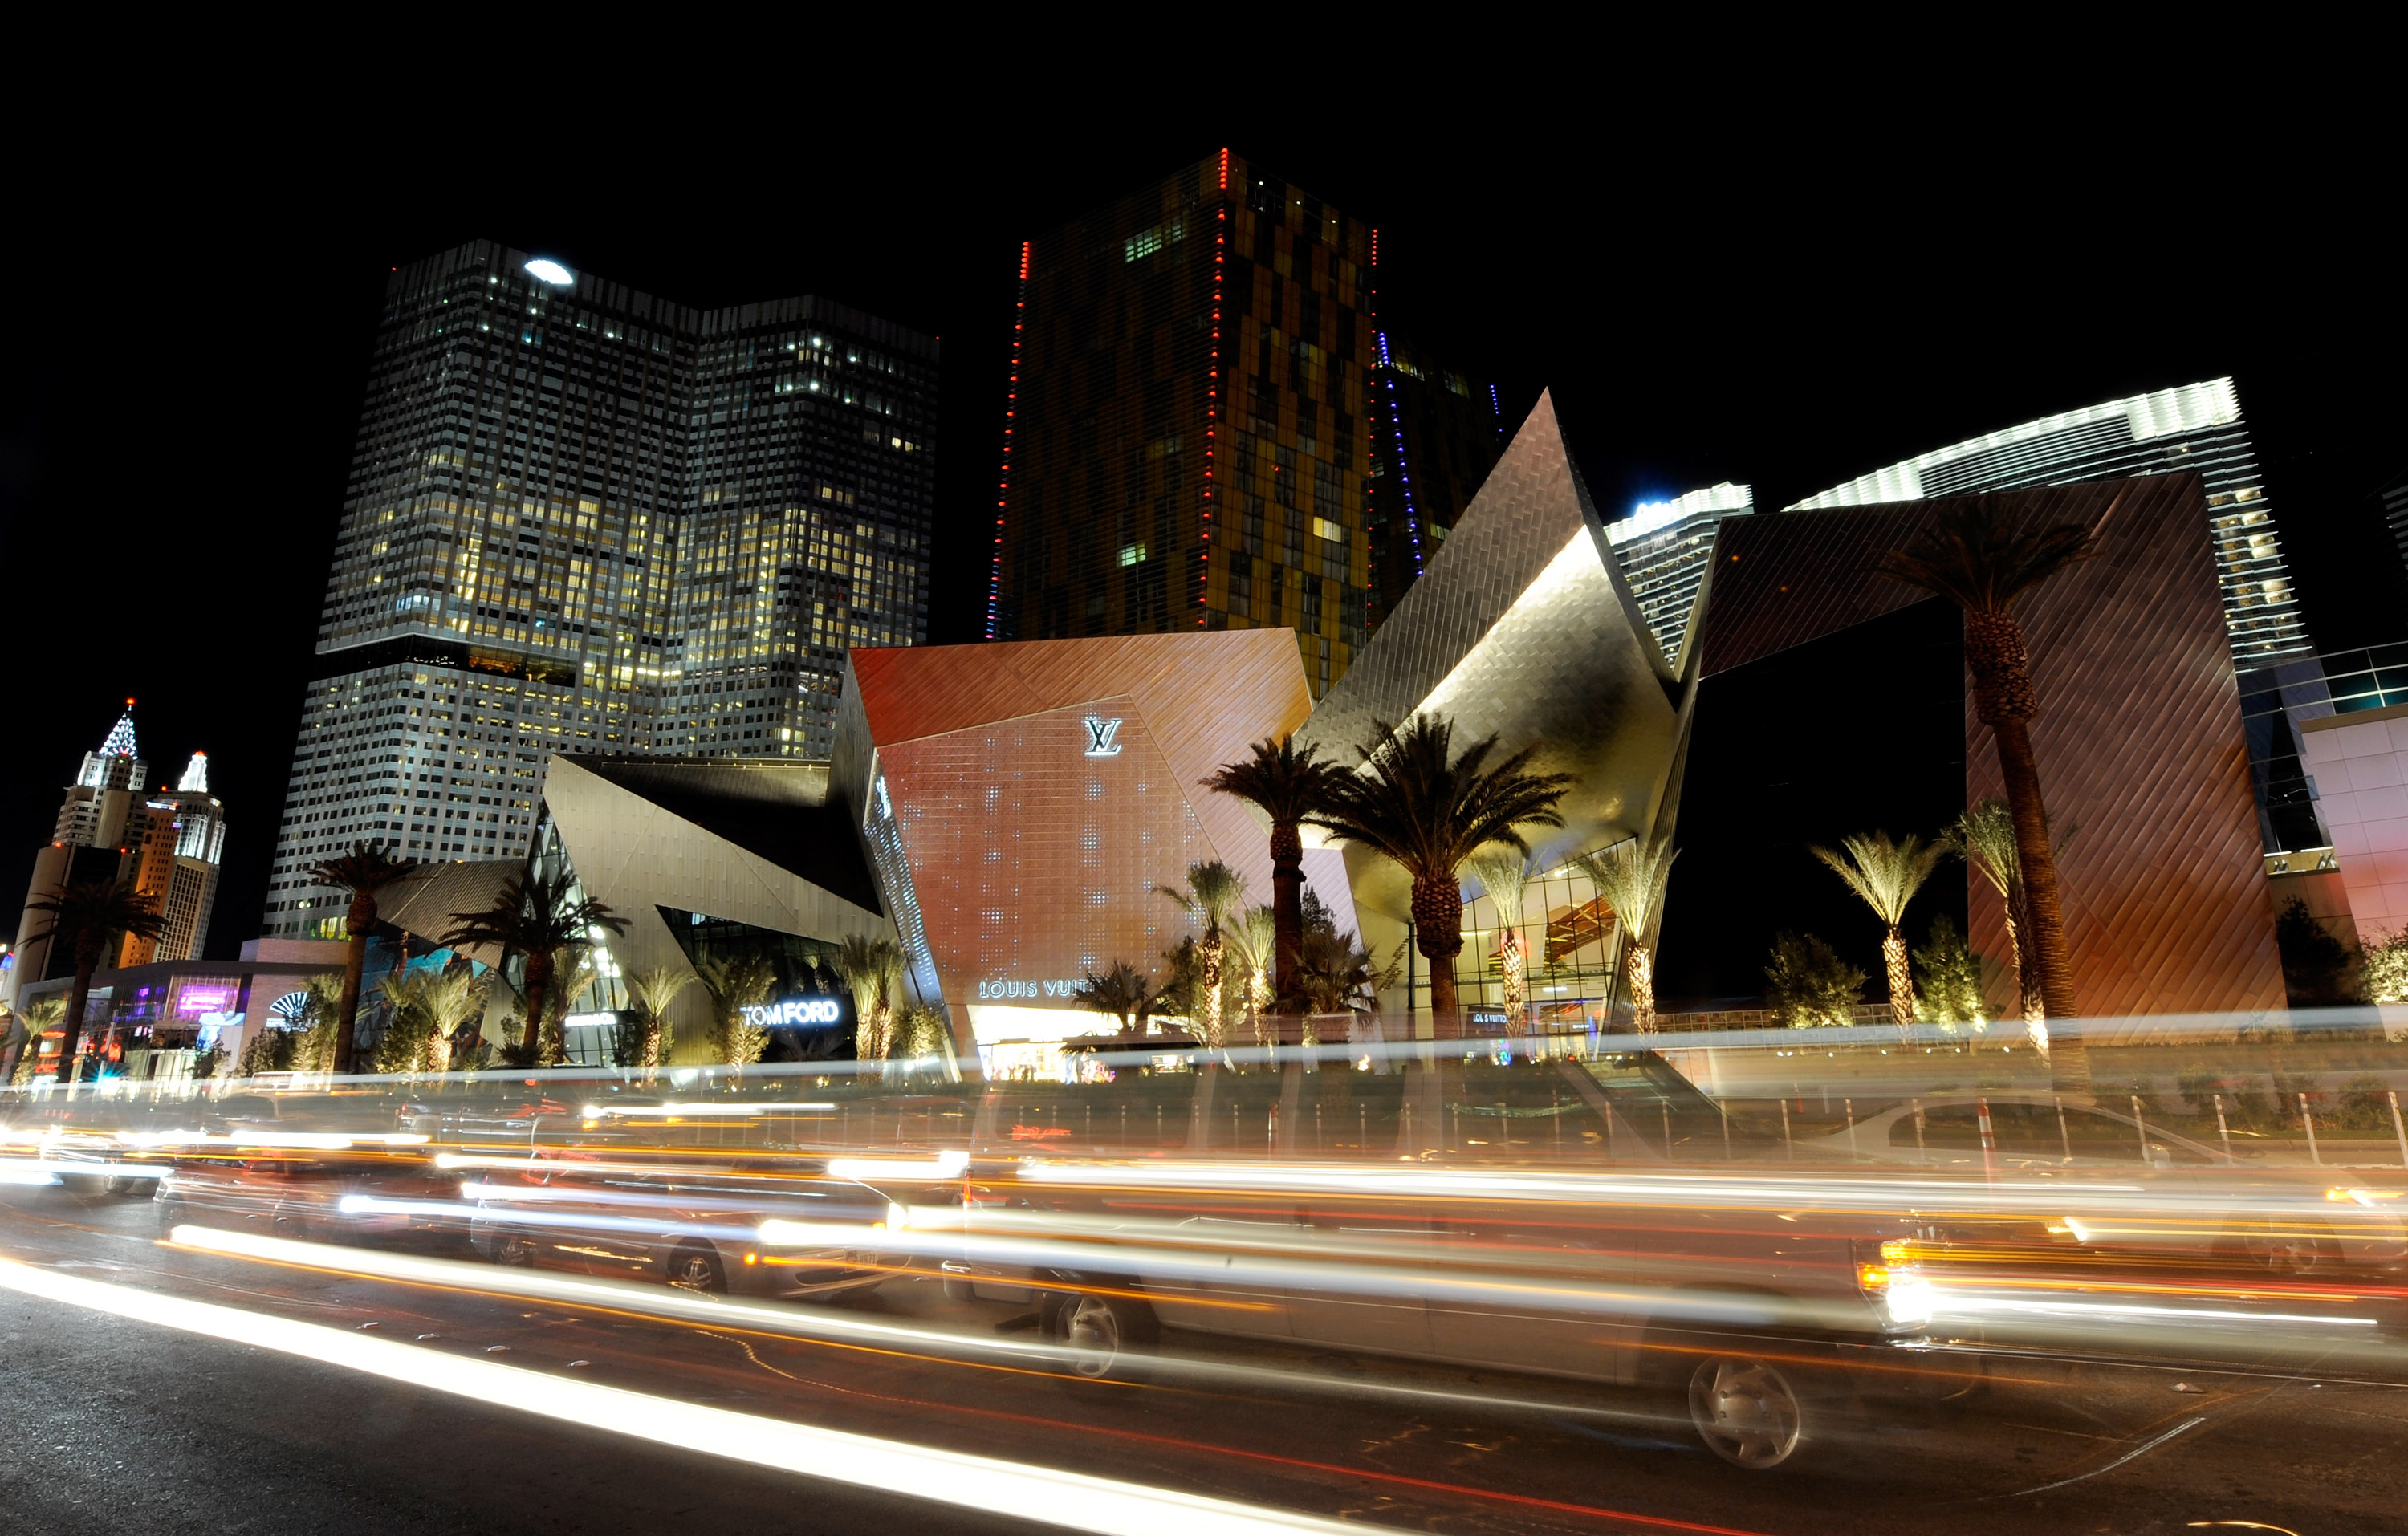 The luxury shopping center Crystals in Las Vegas.